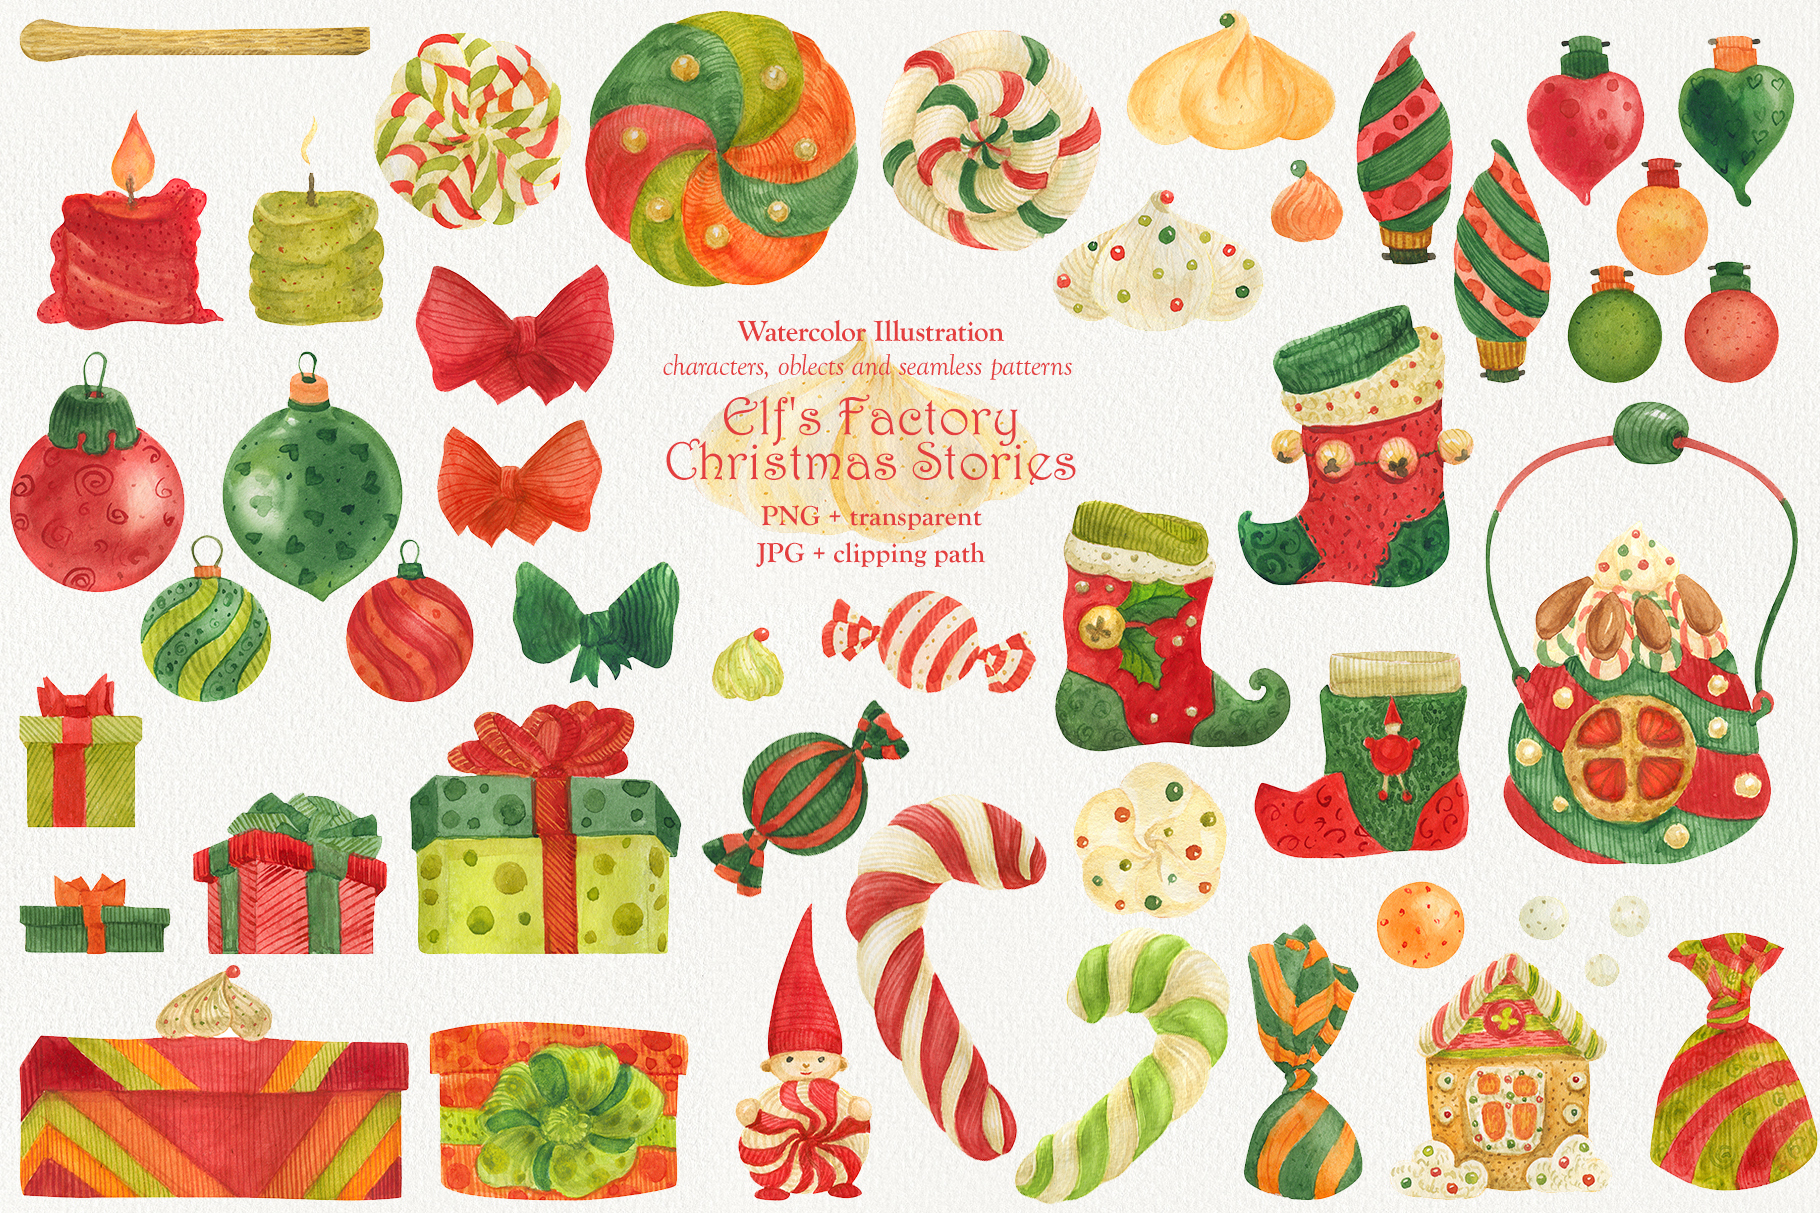 Elf's Factory Christmas Stories example image 2